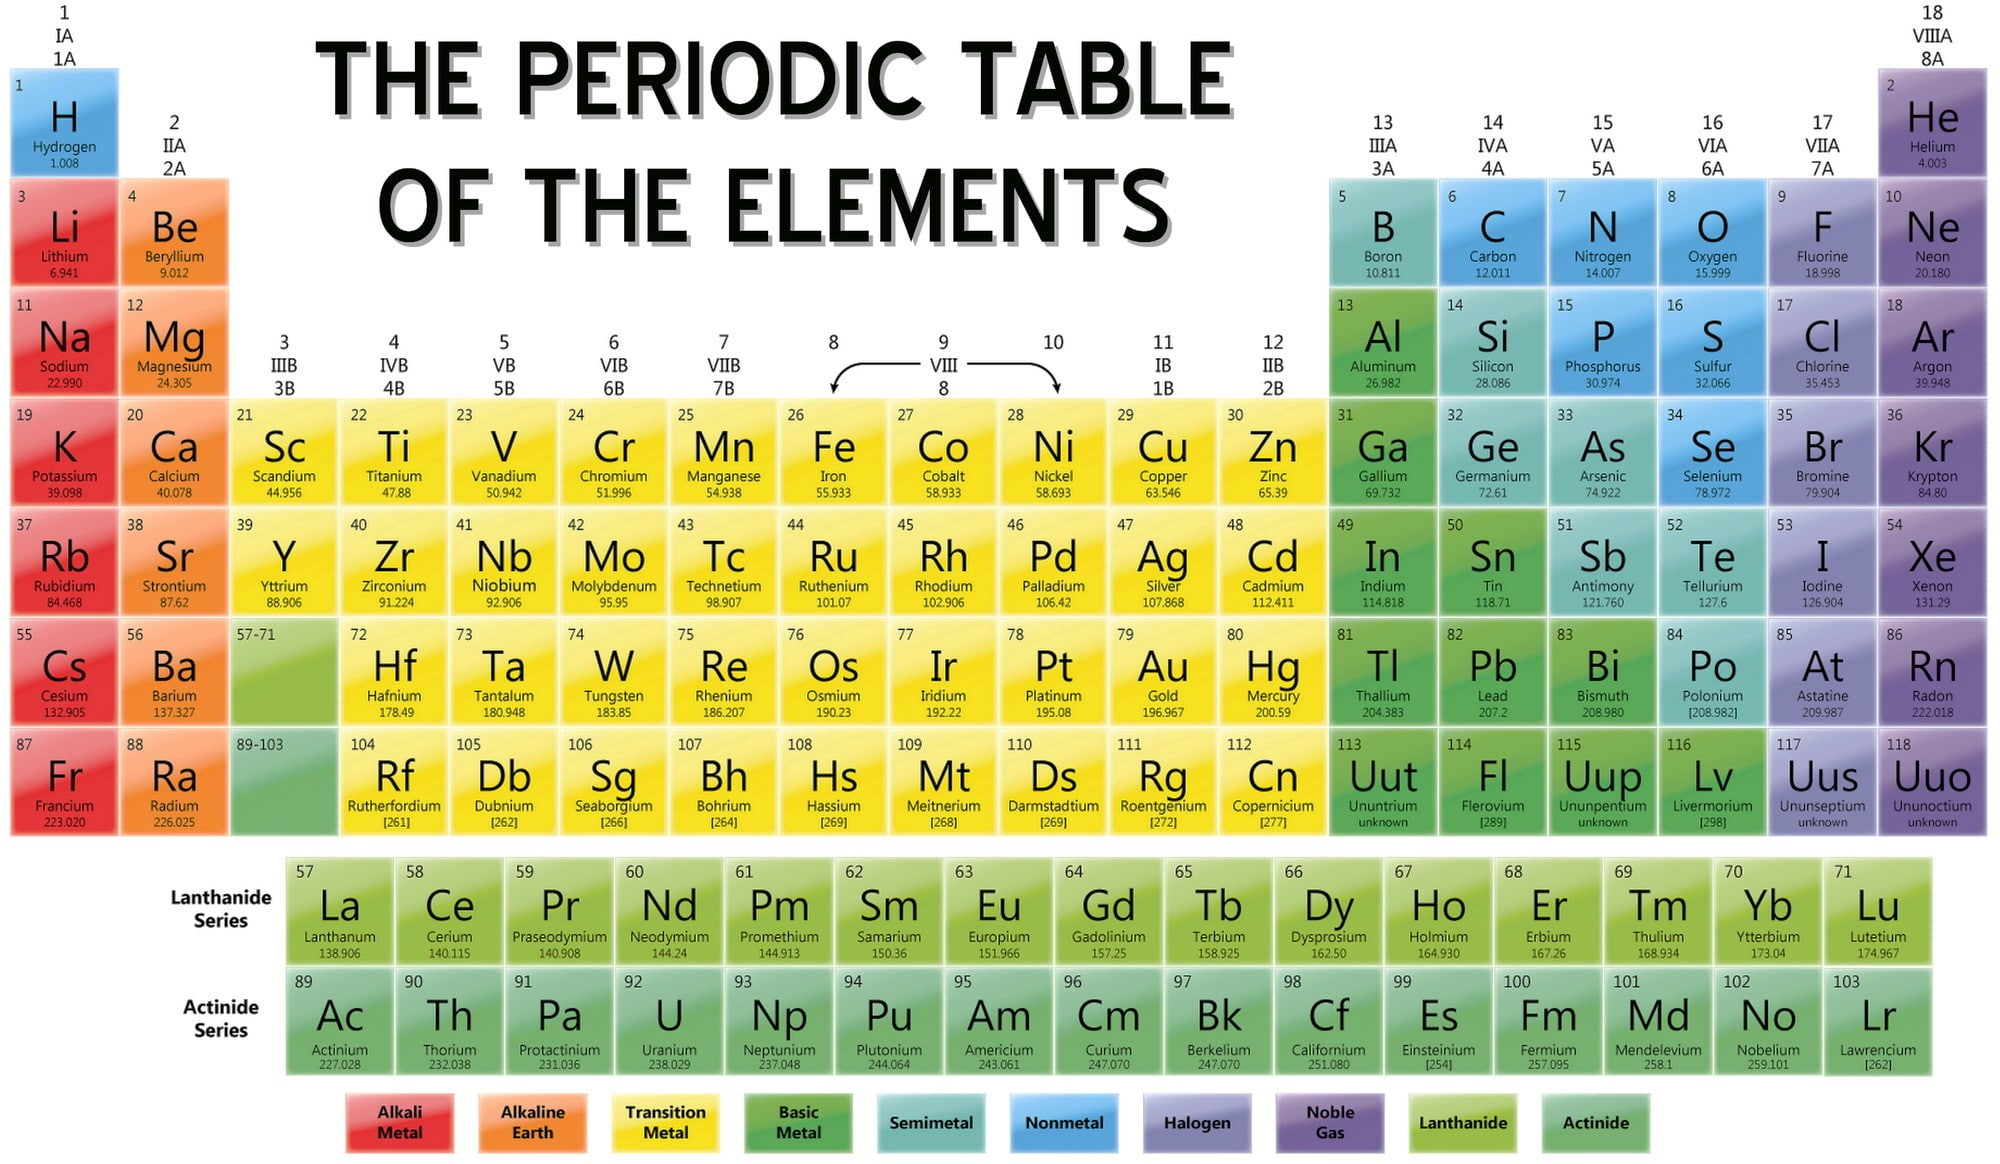 the periodic table of the elements list - Periodic Table Of Elements Be